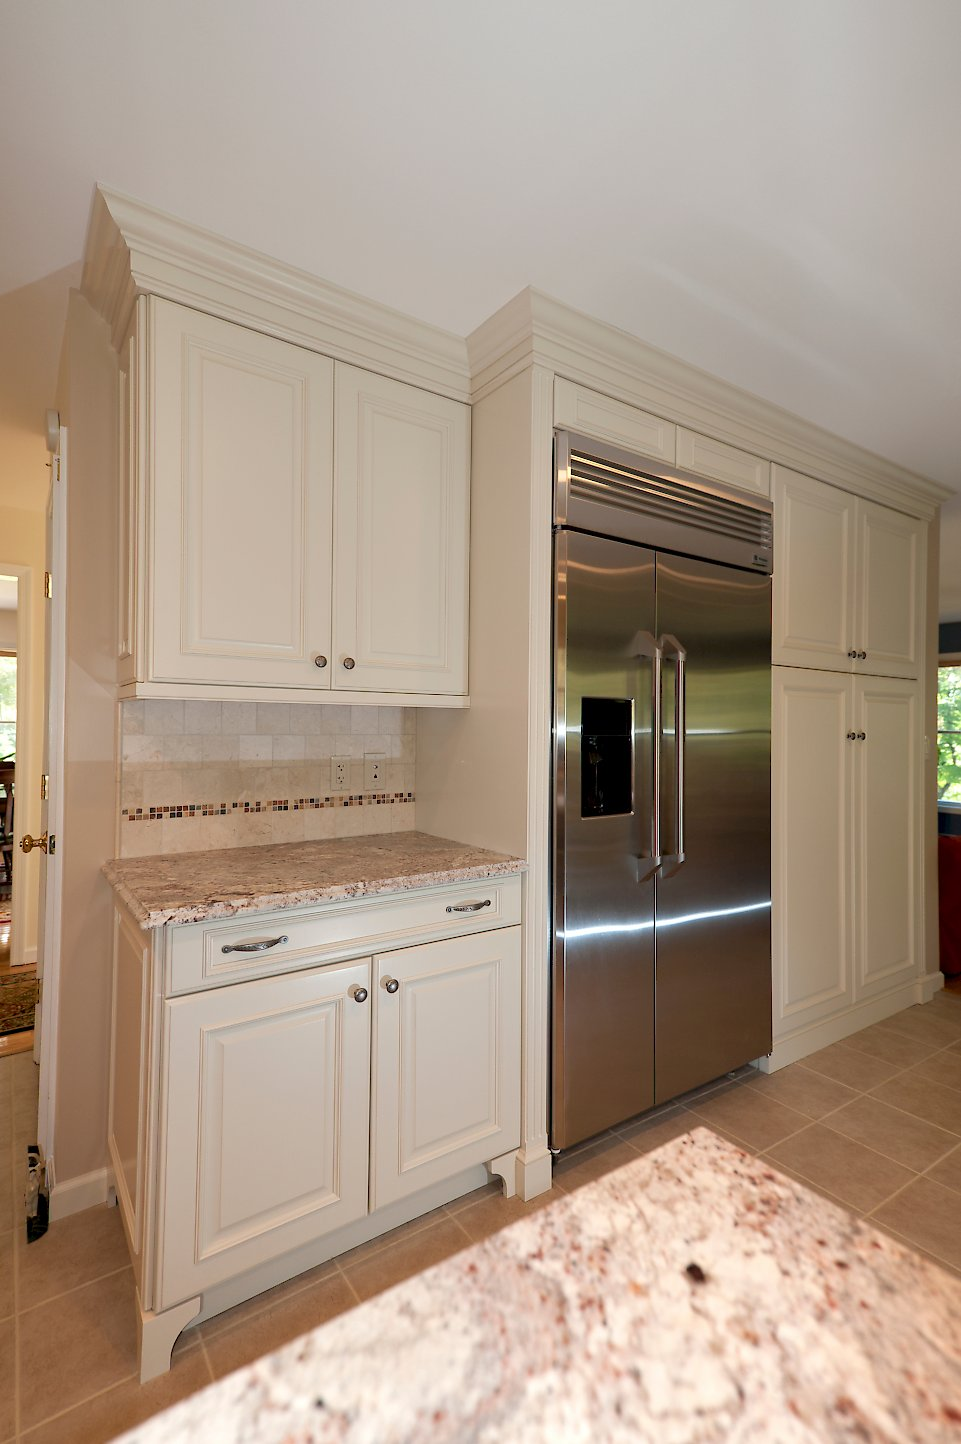 A stainless steel refrigerator with more cabinetry on the opposite wall.